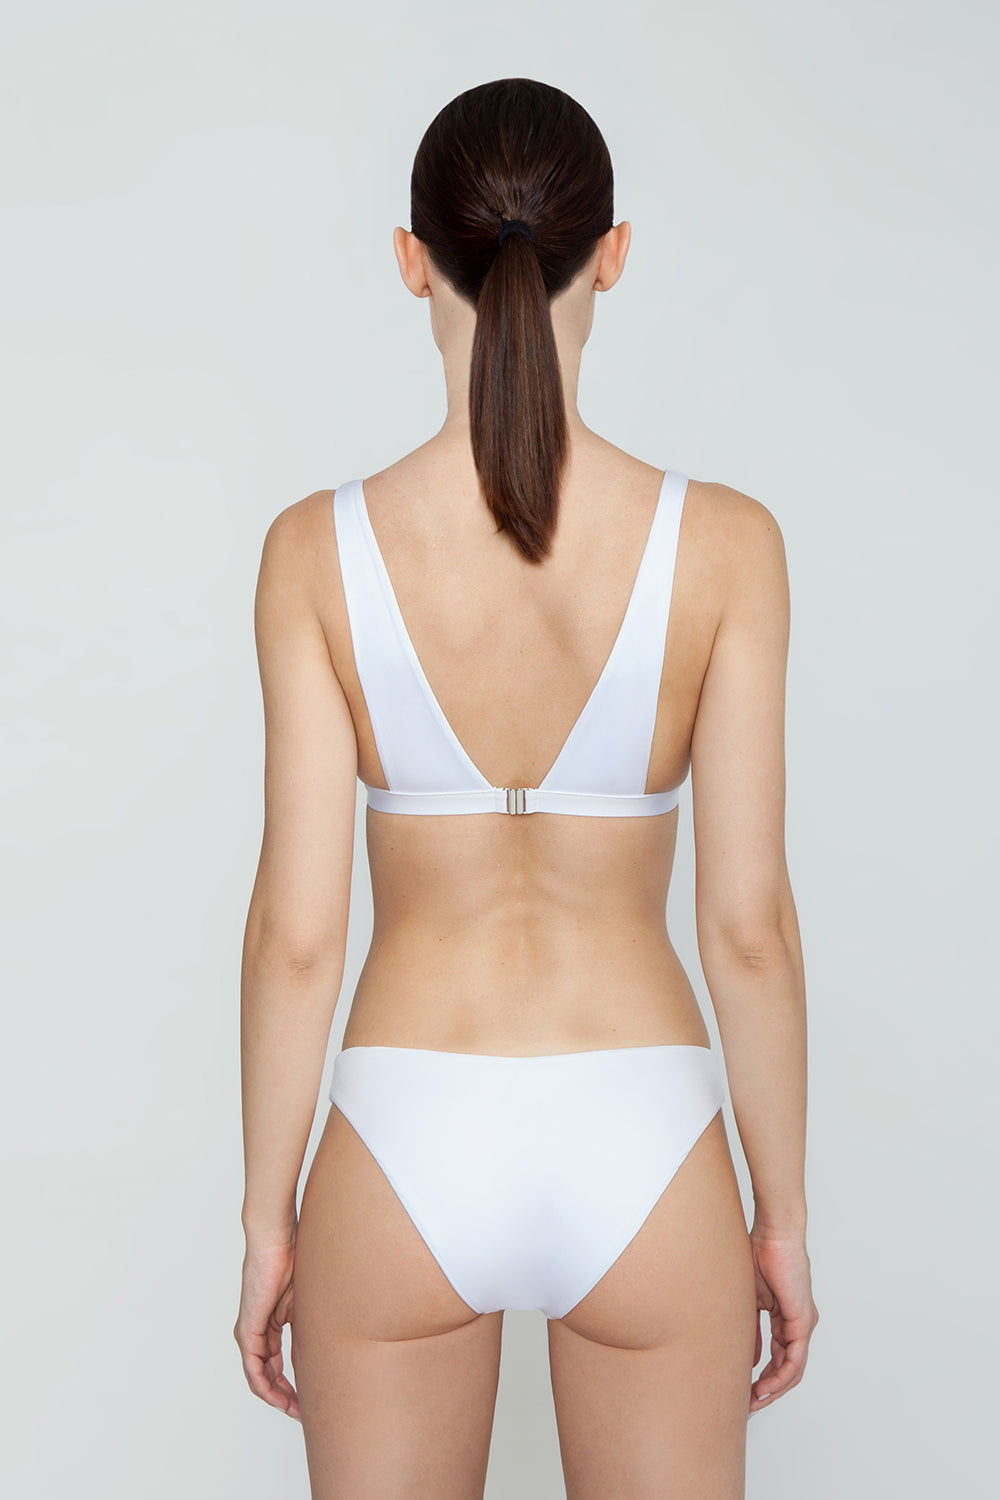 MONICA HANSEN BEACHWEAR Babe Watch V Bikini Bottom - White Bikini Bottom | White| Monica Hansen Beachwear Babe Watch V Bikini Bottom - White Waist cut down in a V shape in front and in back Sides can be worn low rise or mid rise High cut leg  Cheeky coverage Italian fabric 85% Nylon 15% Elastane Manufactured in Italy Hand wash cold.  Dry Flat Back View